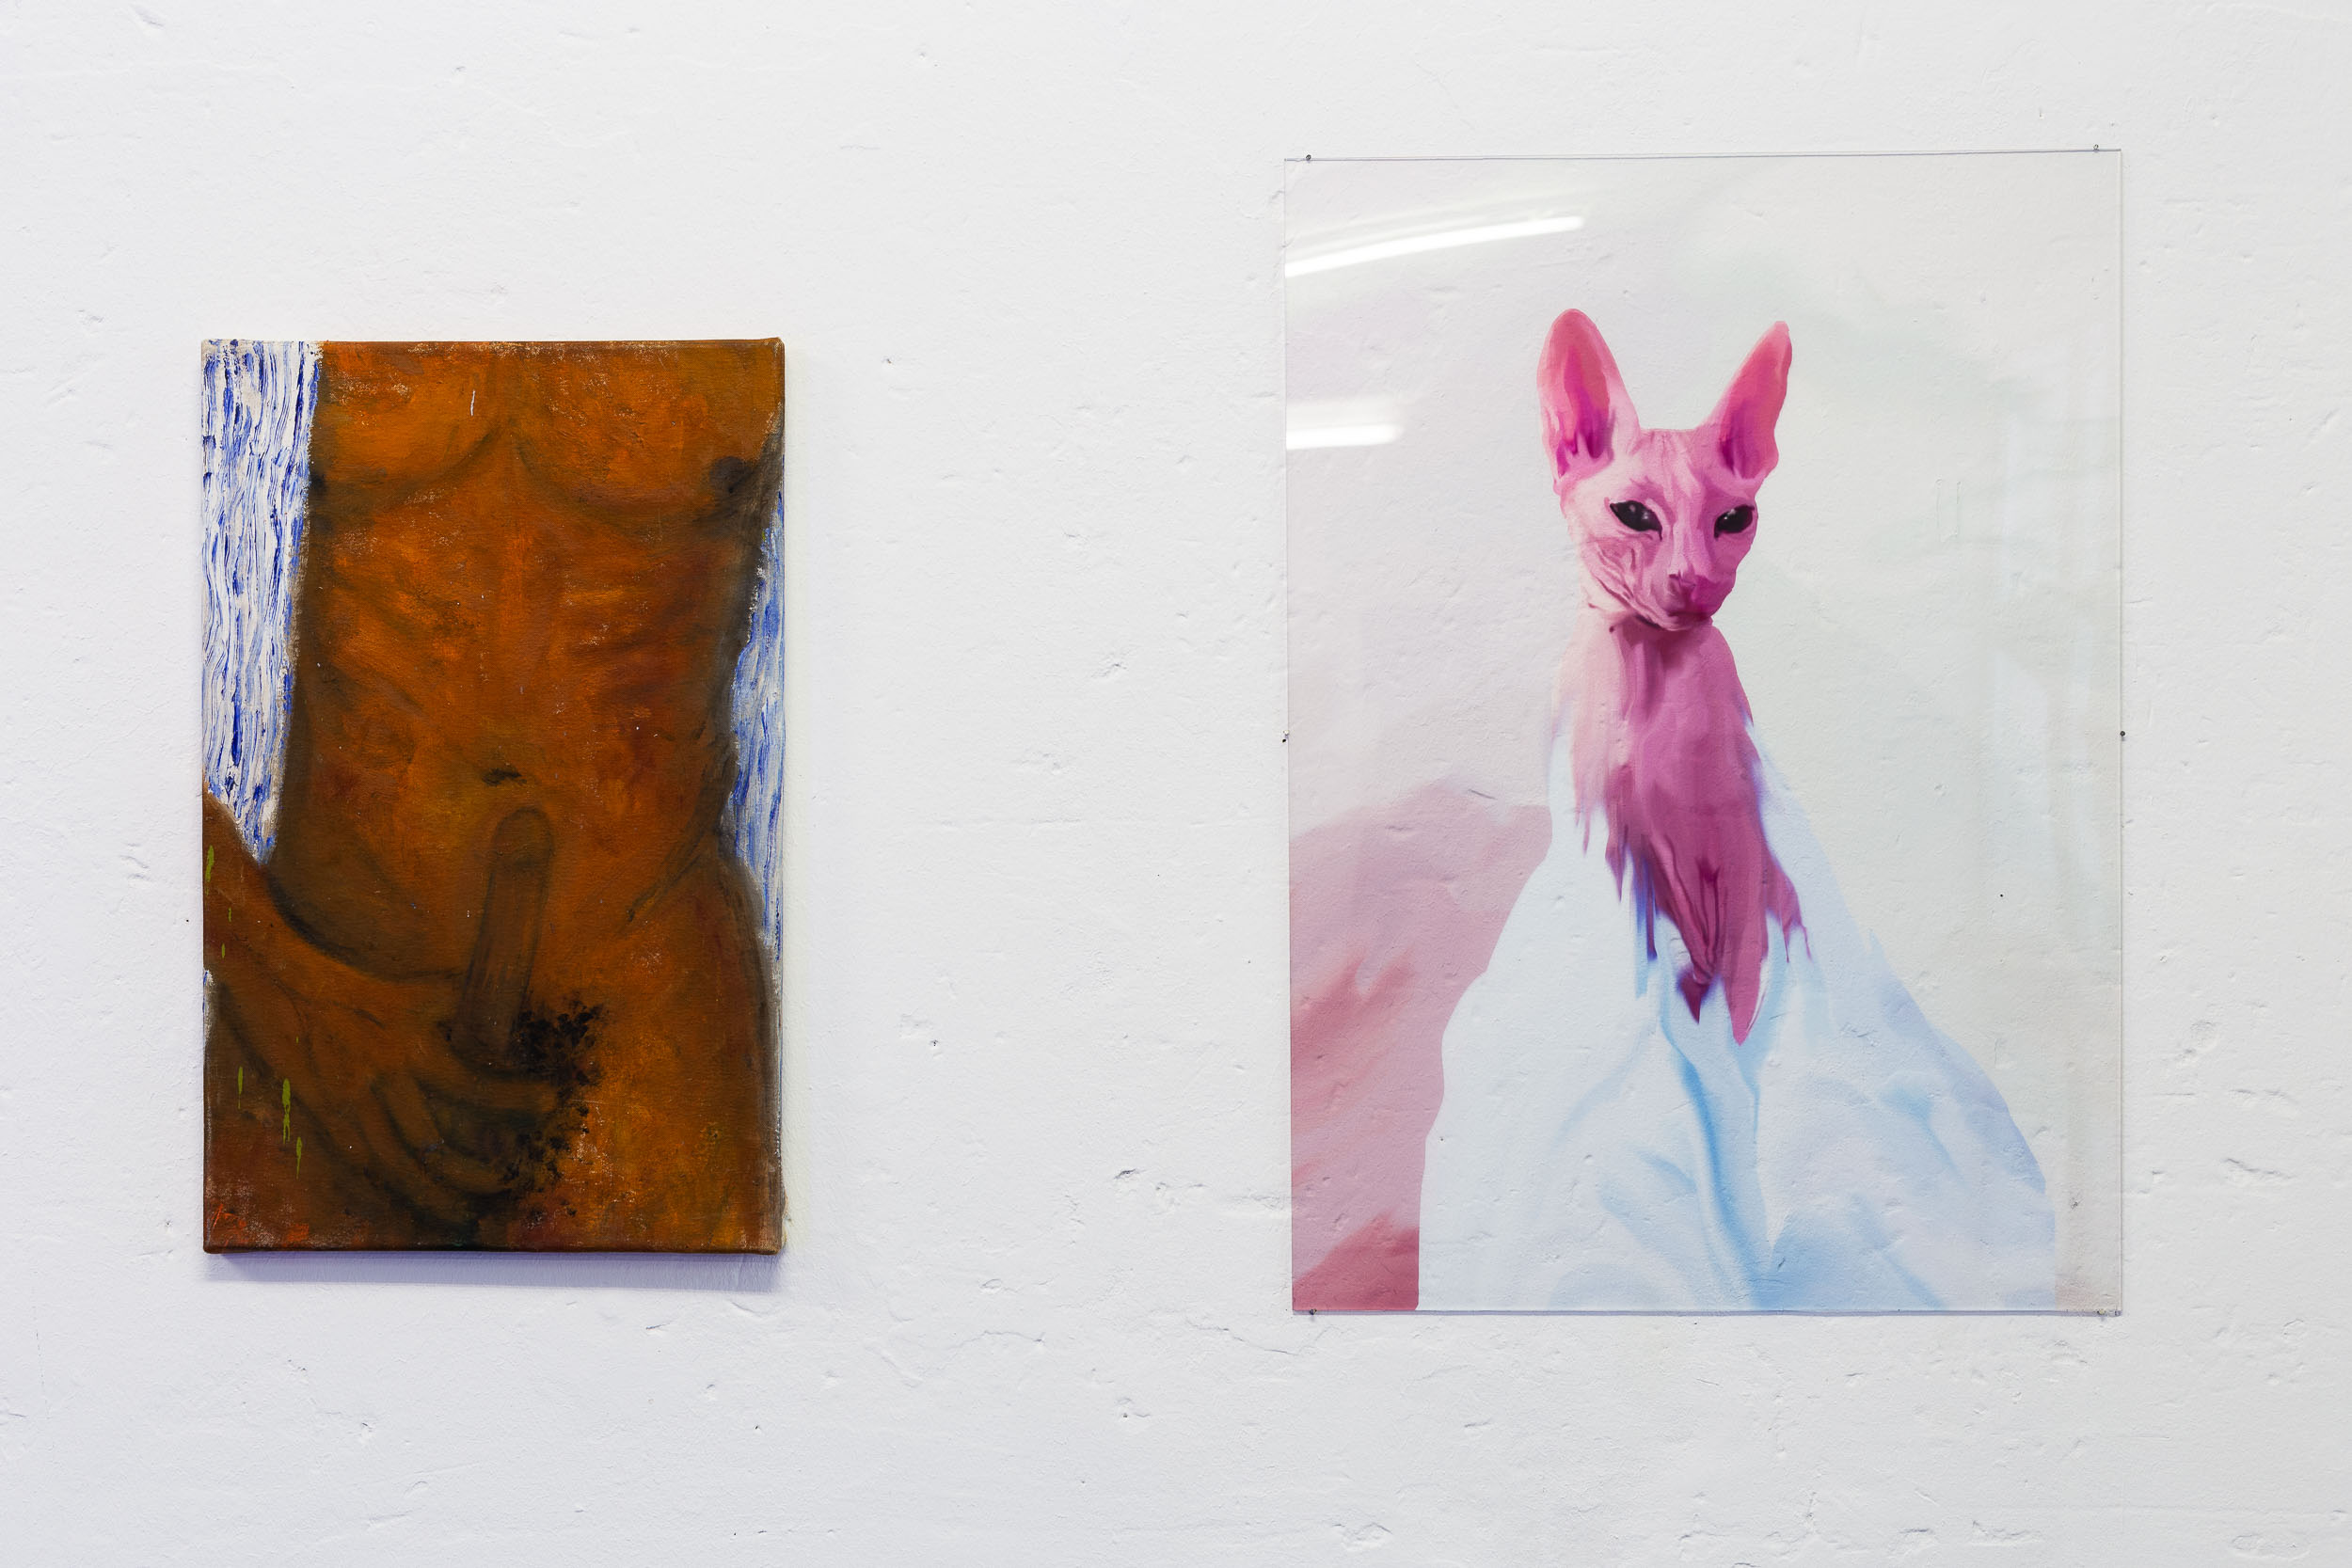 Left: Dieter Hall,  Mach es wie die Sonnenuhr, zähl die heiteren Stunden nur,  2004, Oil on canvas, 56 x 35.5 cm Right: Xénia Lucie Laffely,  My cat is a witch,  2018, Acrylic print, 70 x 50 cm, edition of 5 + 2AP  Photo: Kilian Bannwart